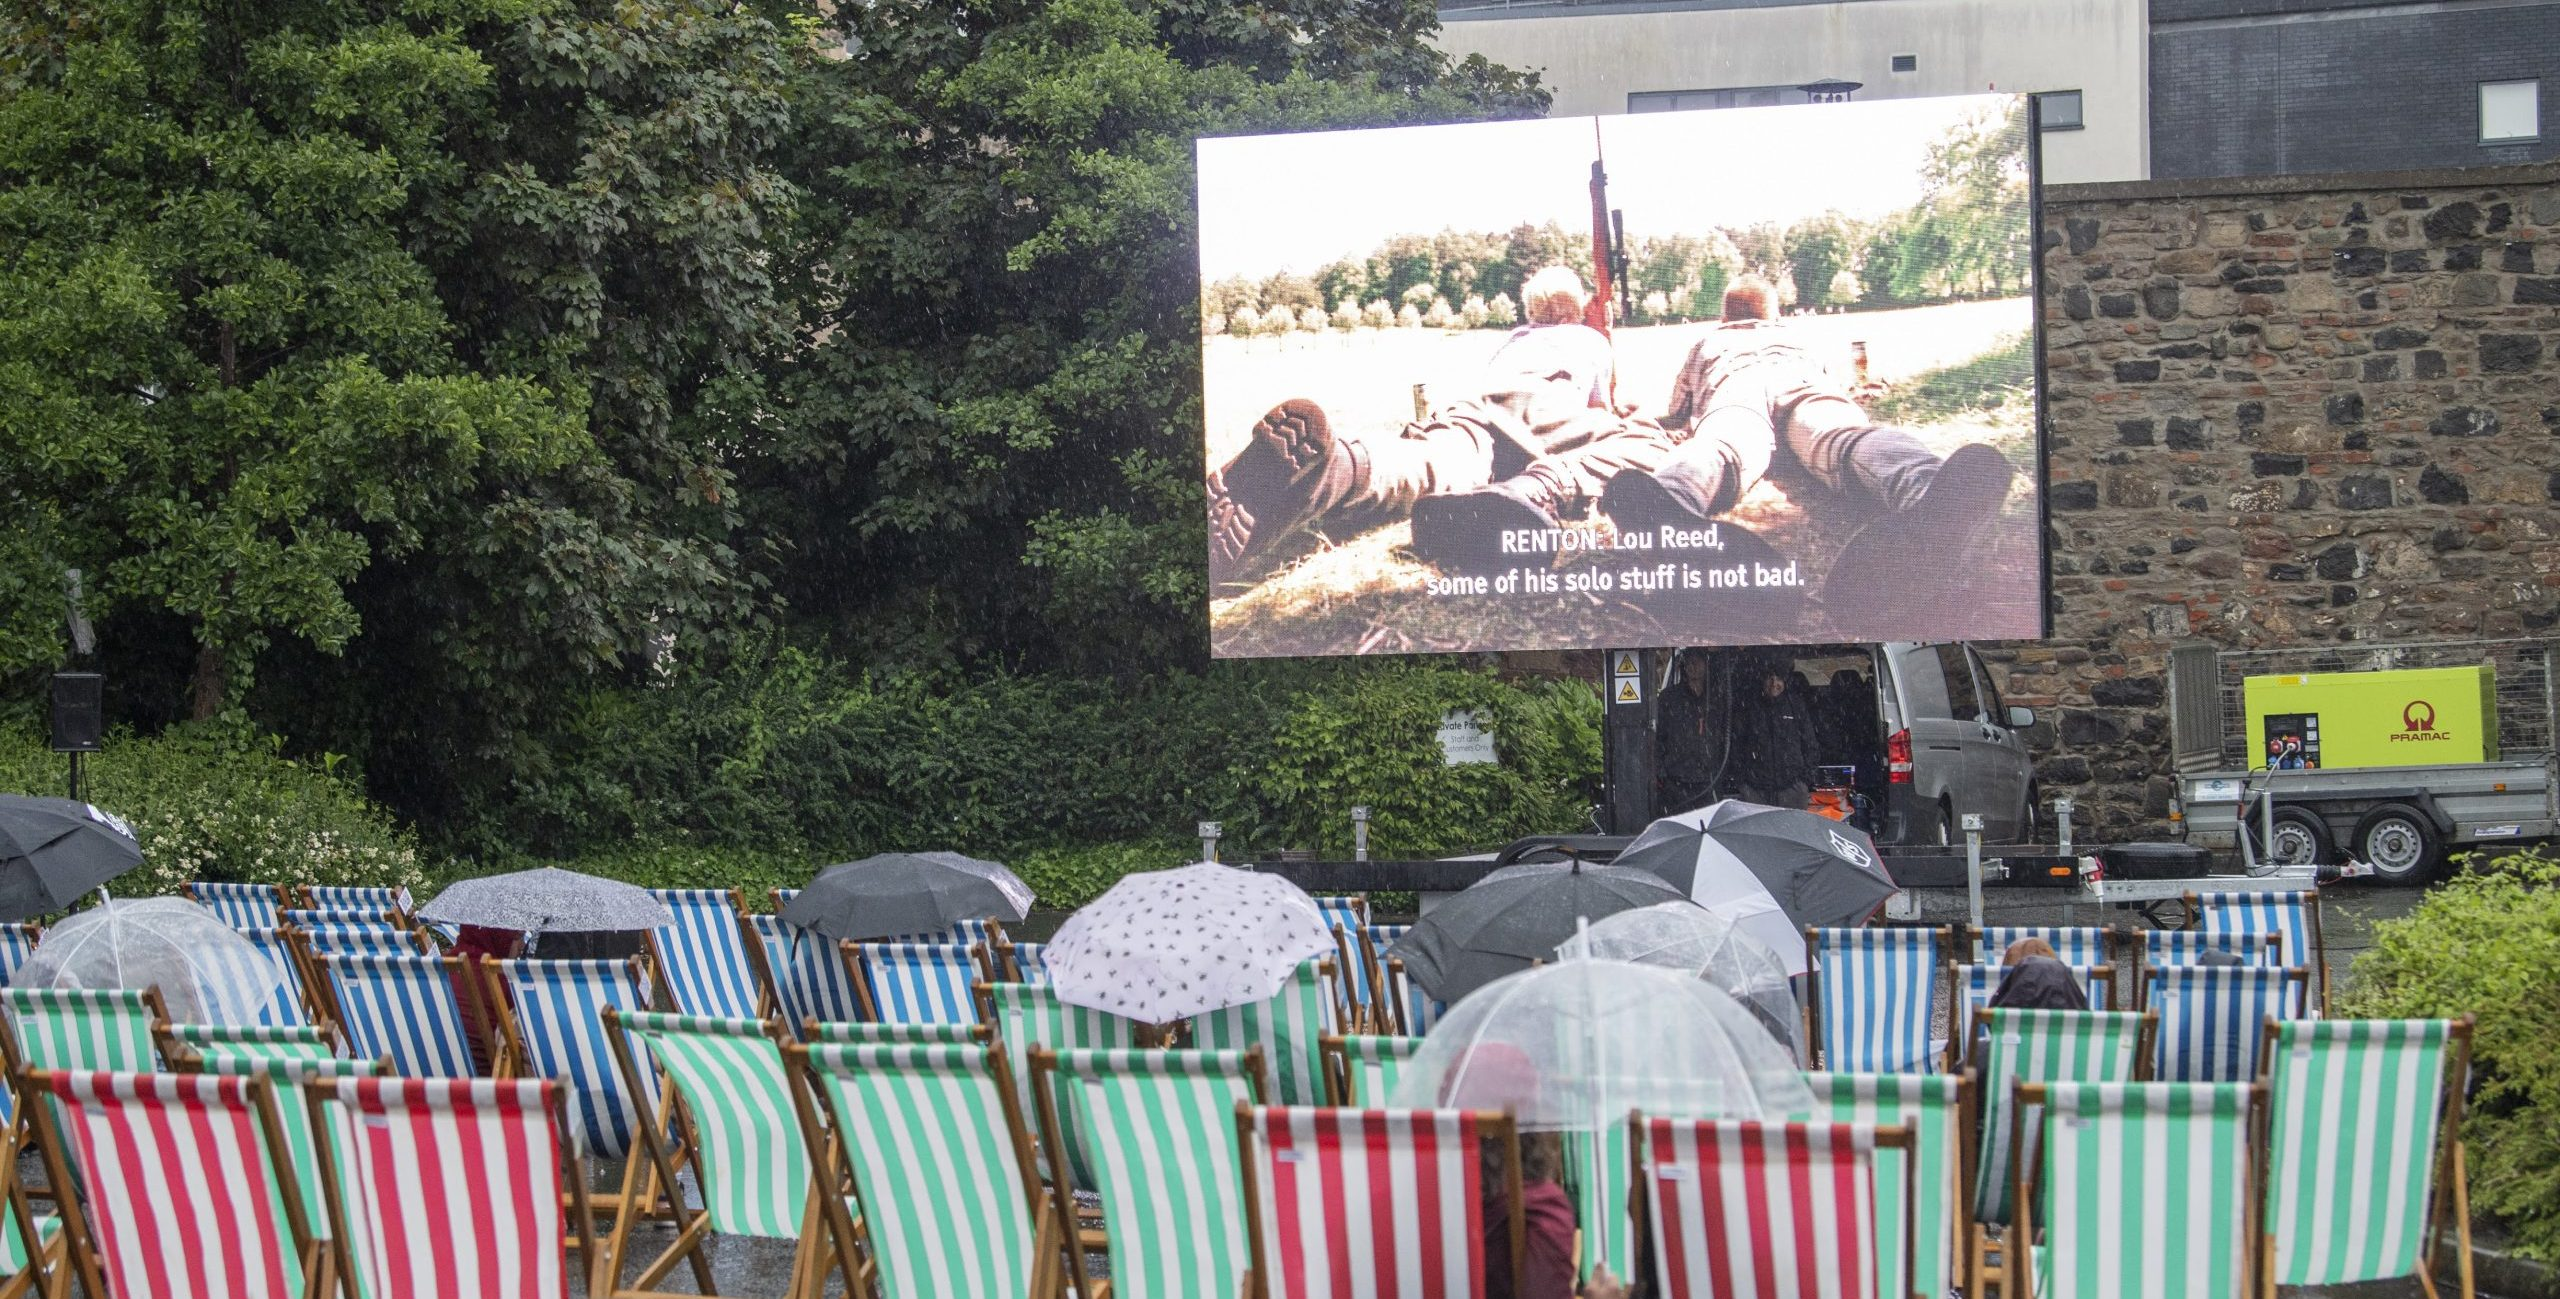 A group of striped deckchairs face away from the camera. They are pointed towards a screen showing Trainspotting on a rainy day in Edinburgh.